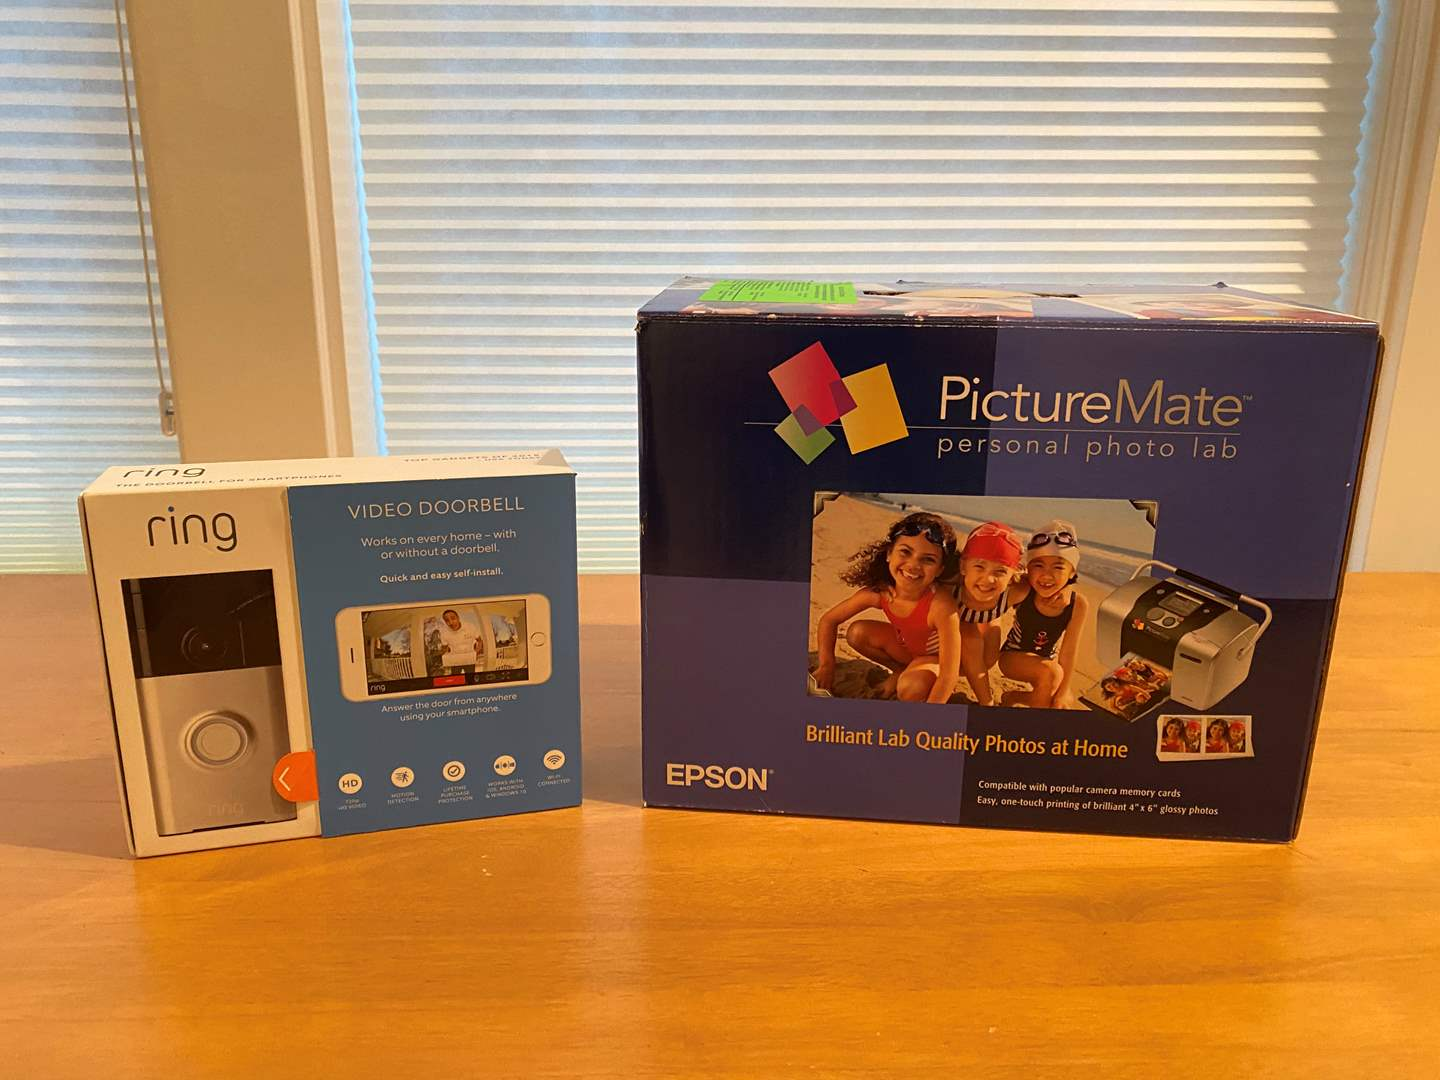 Lot # 198 - Ring Video Doorbell, Epson Picturemate Personal Photo Lab (main image)